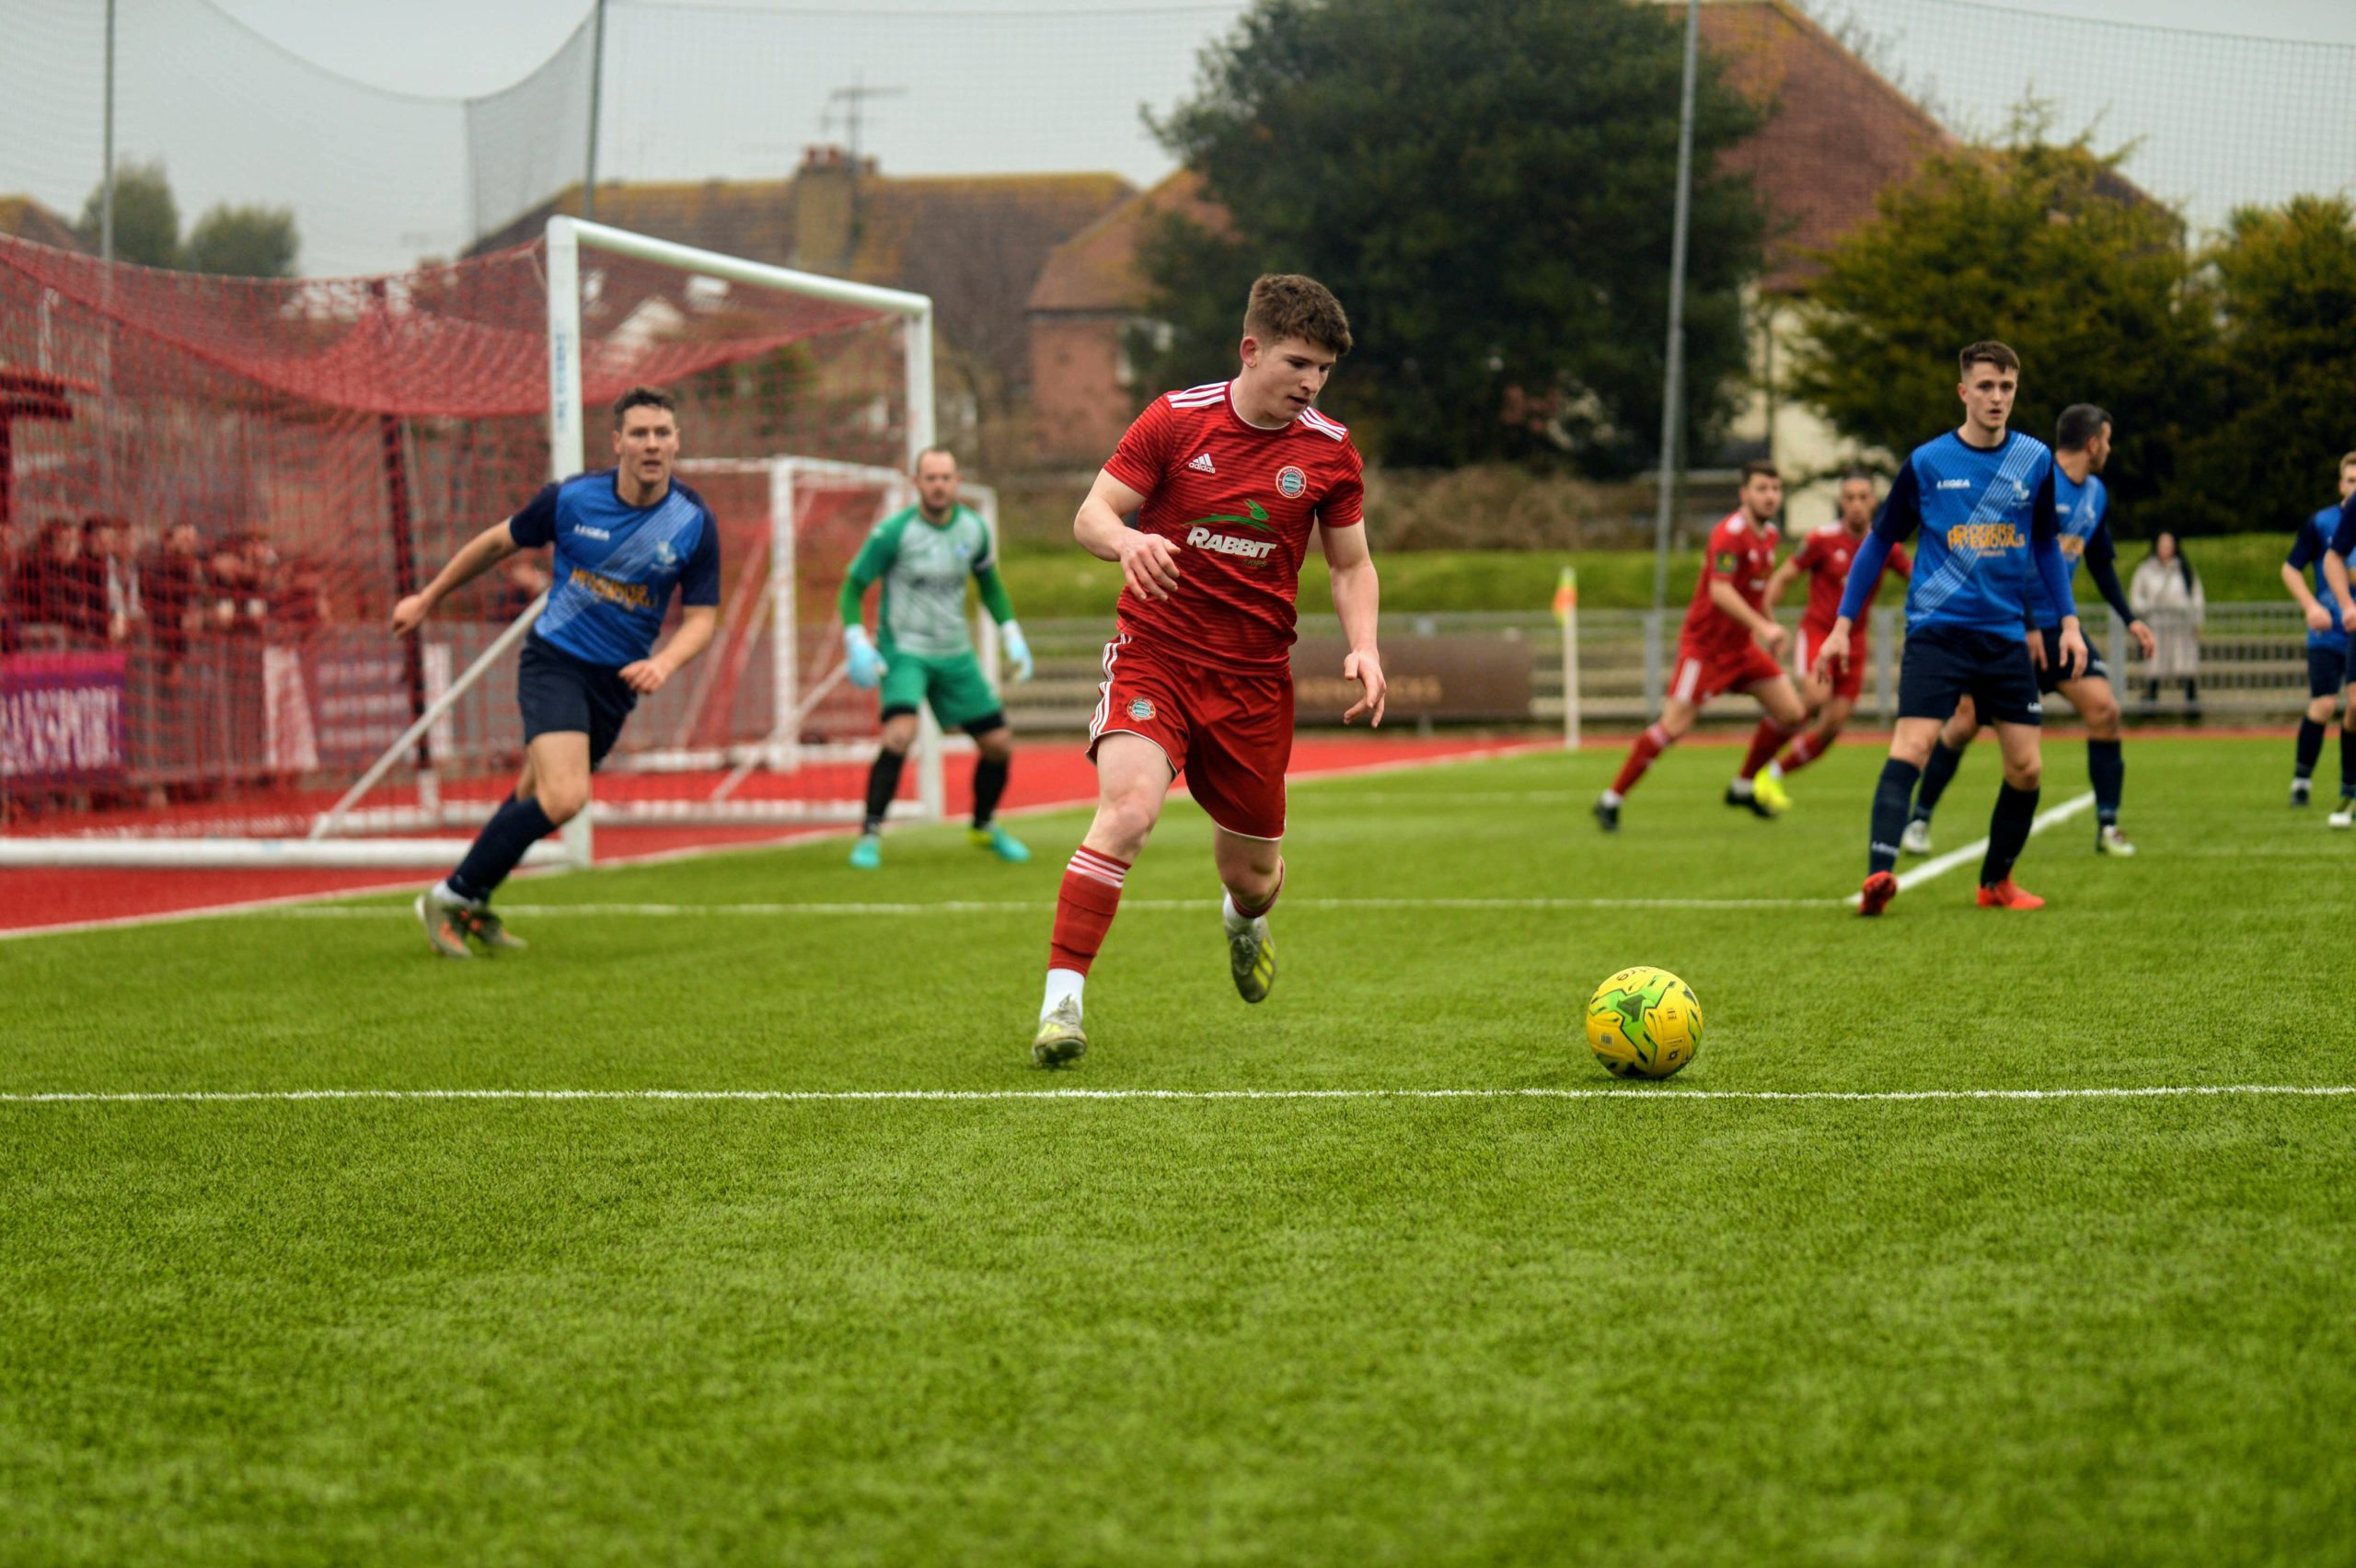 Read the full article - HIGHLIGHTS | 19/20: Wingate & Finchley [H] – League